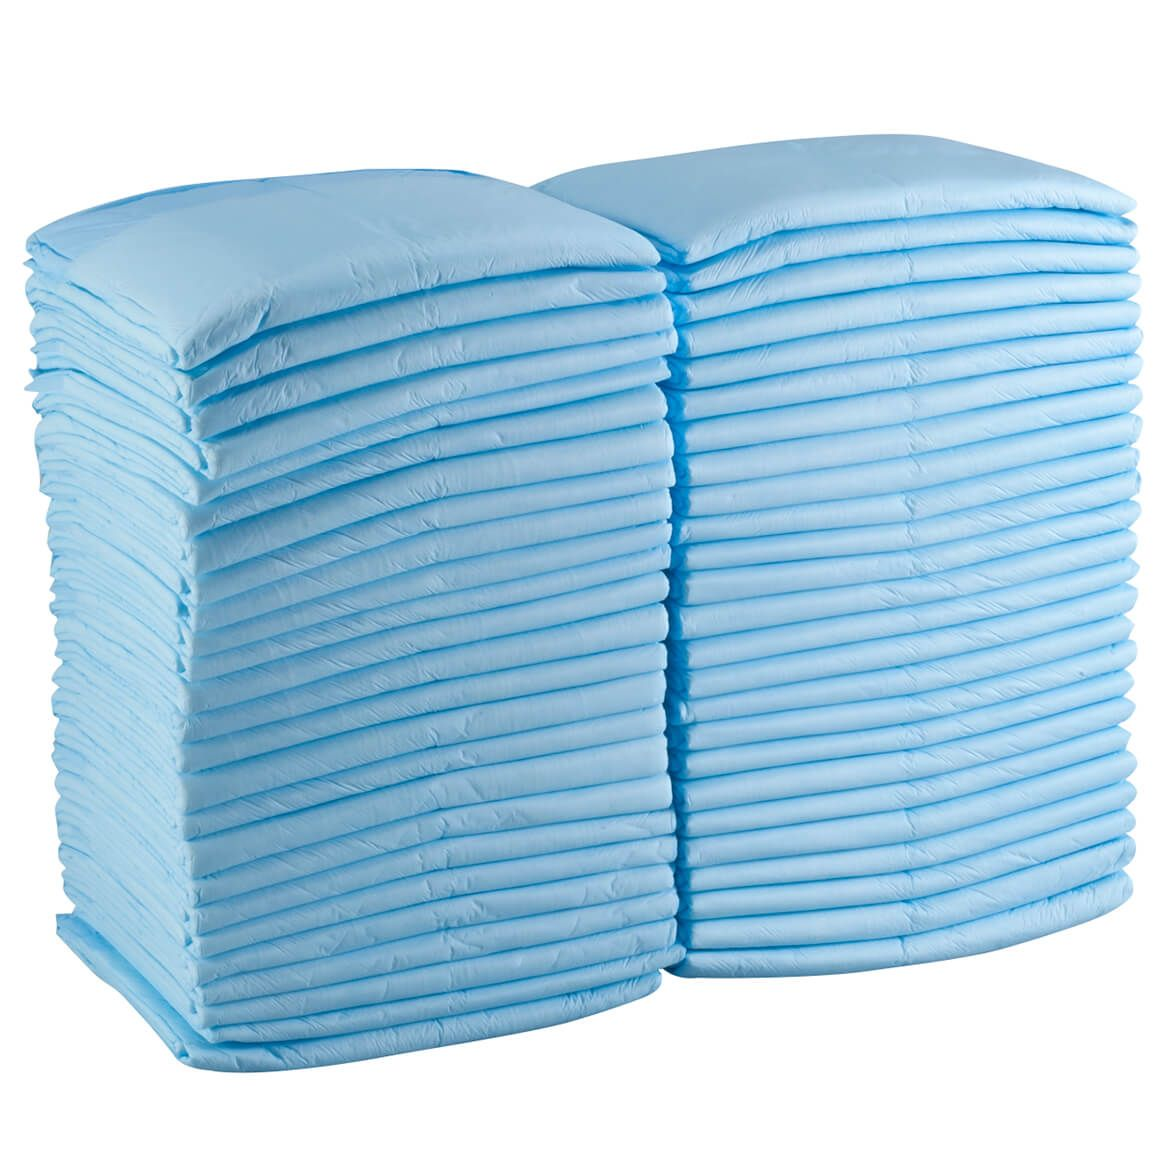 Disposable Underpads, Pack of 50-360100